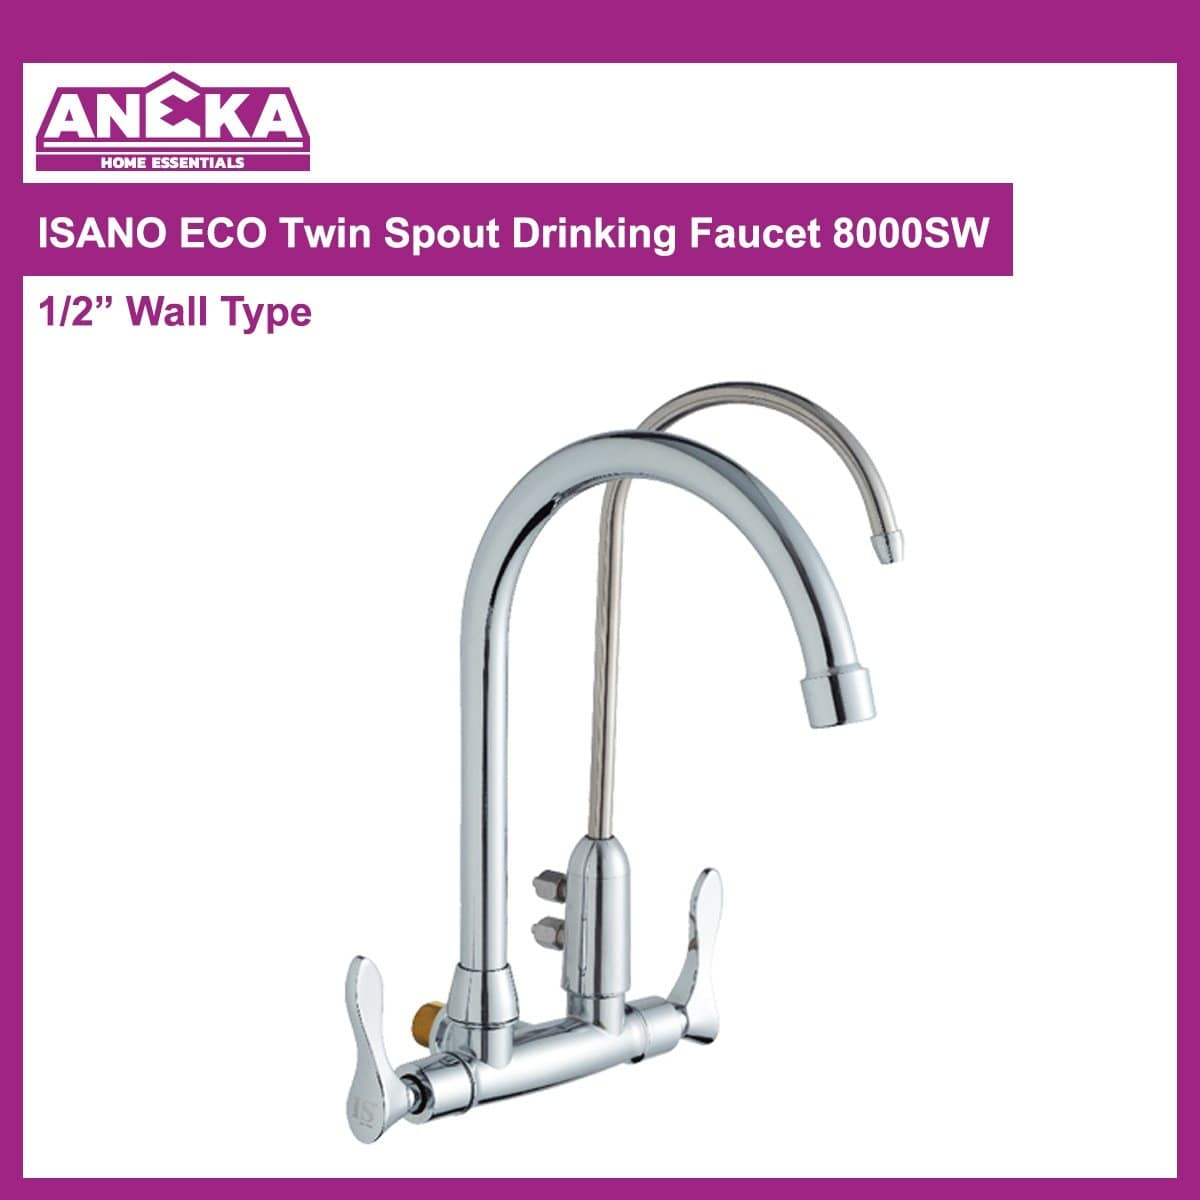 ISANO ECO Twin Spout Drinking Faucet 8000SW